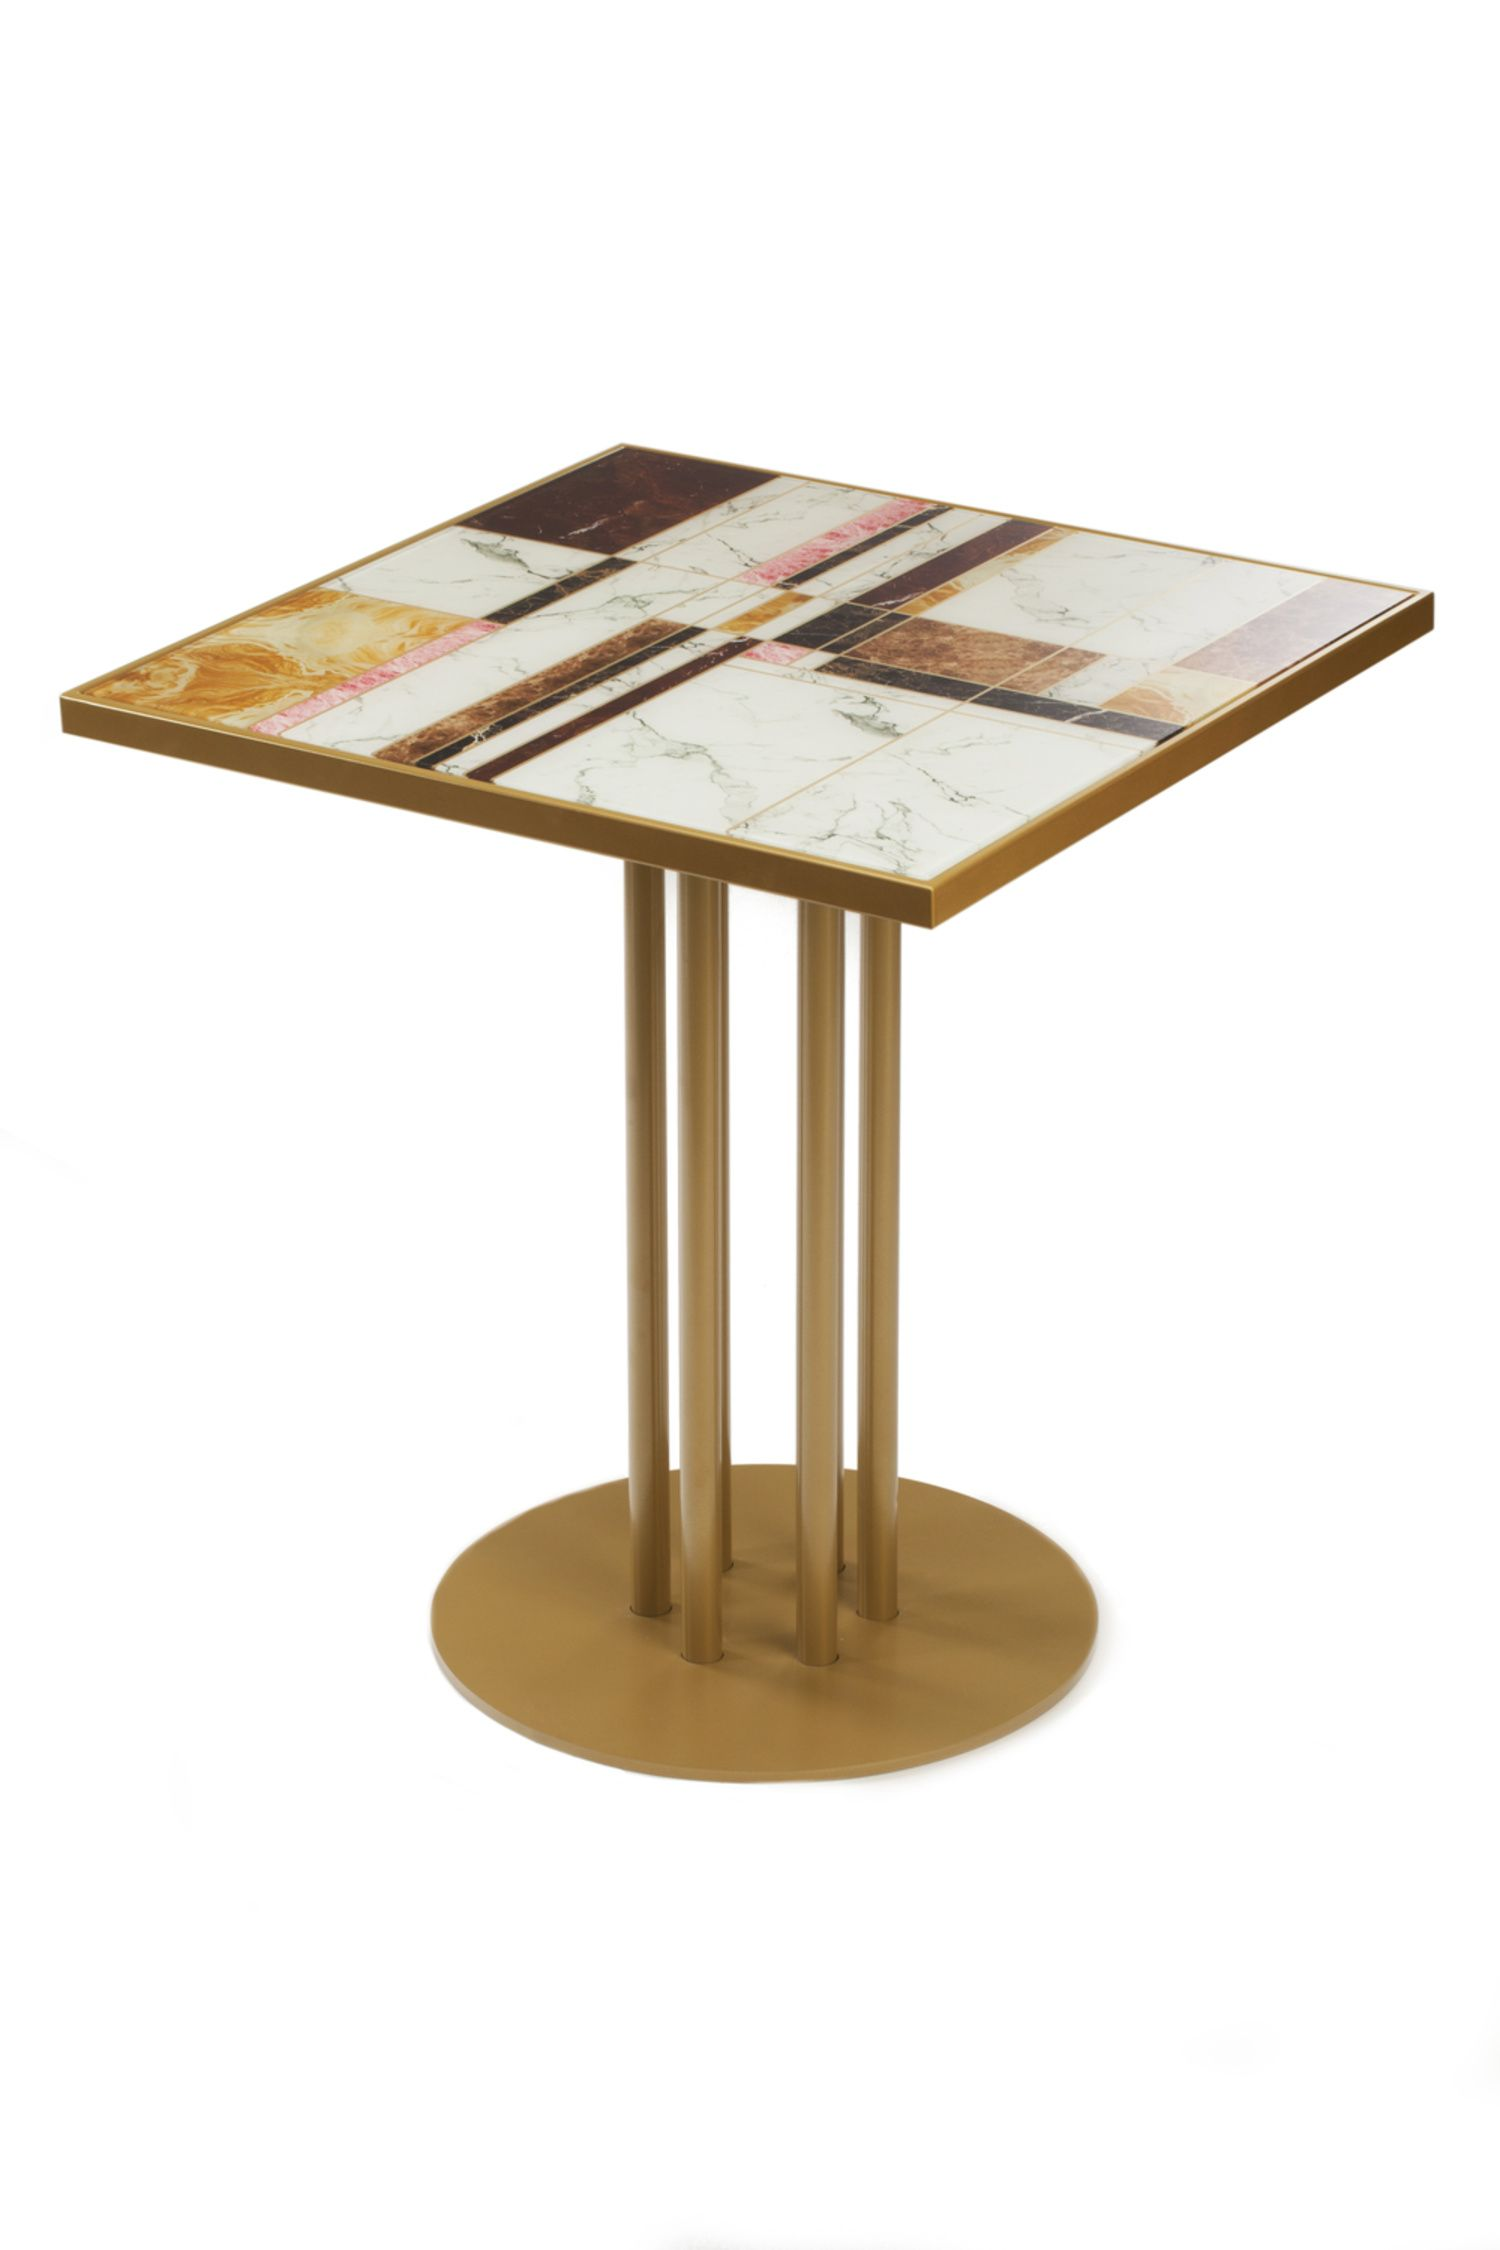 Praga Dinner Table With Printed Glass Top And Gold Metal Feet Restaurant Table Tops Table Top Design Marble Flooring Design